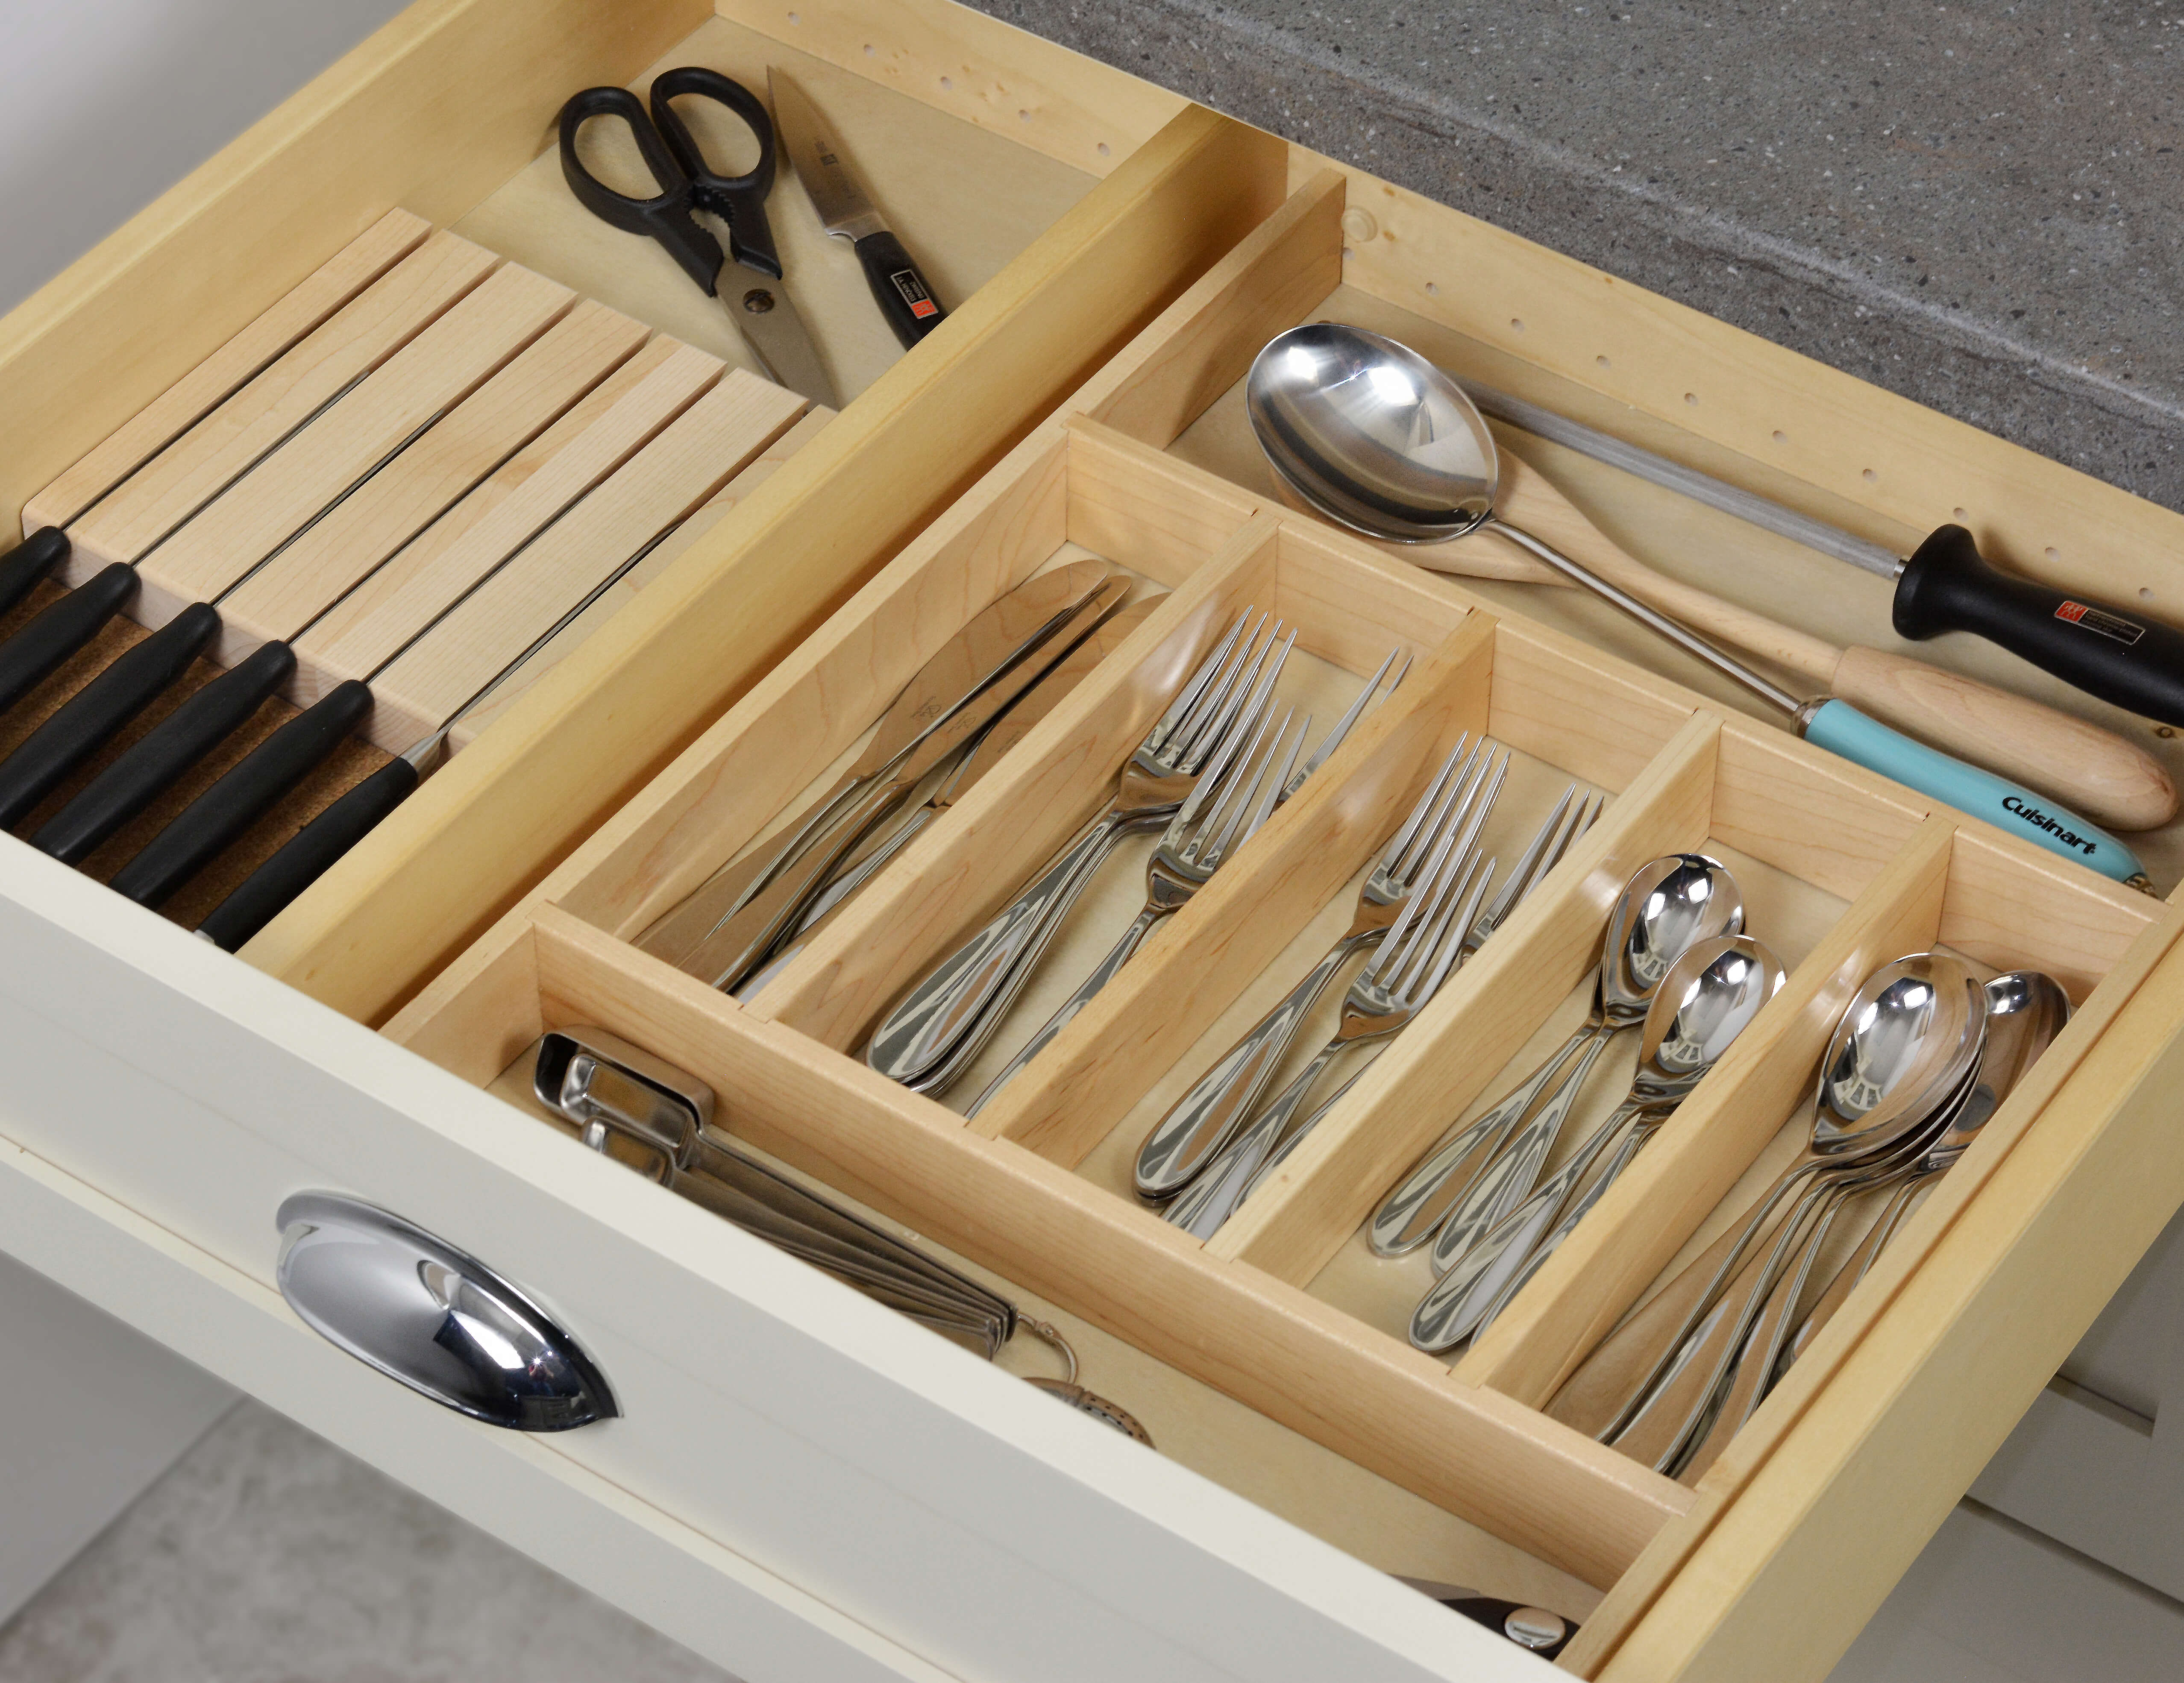 Cutlery Divider Tray and Knife Holder Combo